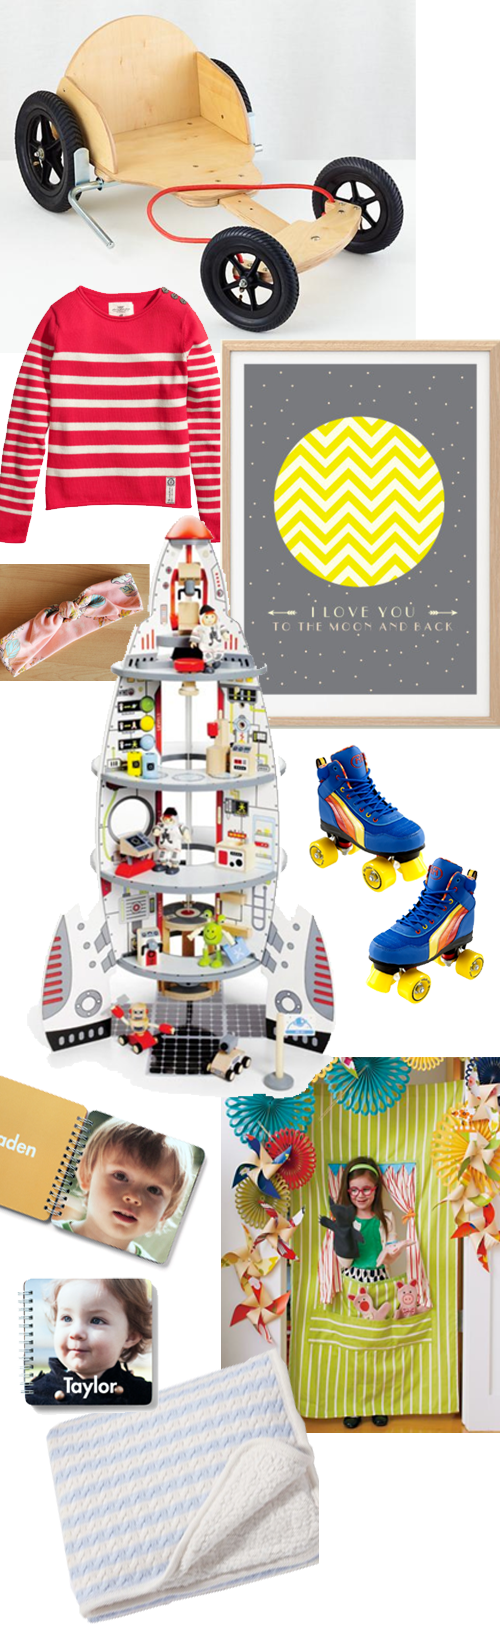 2013 Holiday Gift Guide: For the Kids | PepperDesignBlog.com